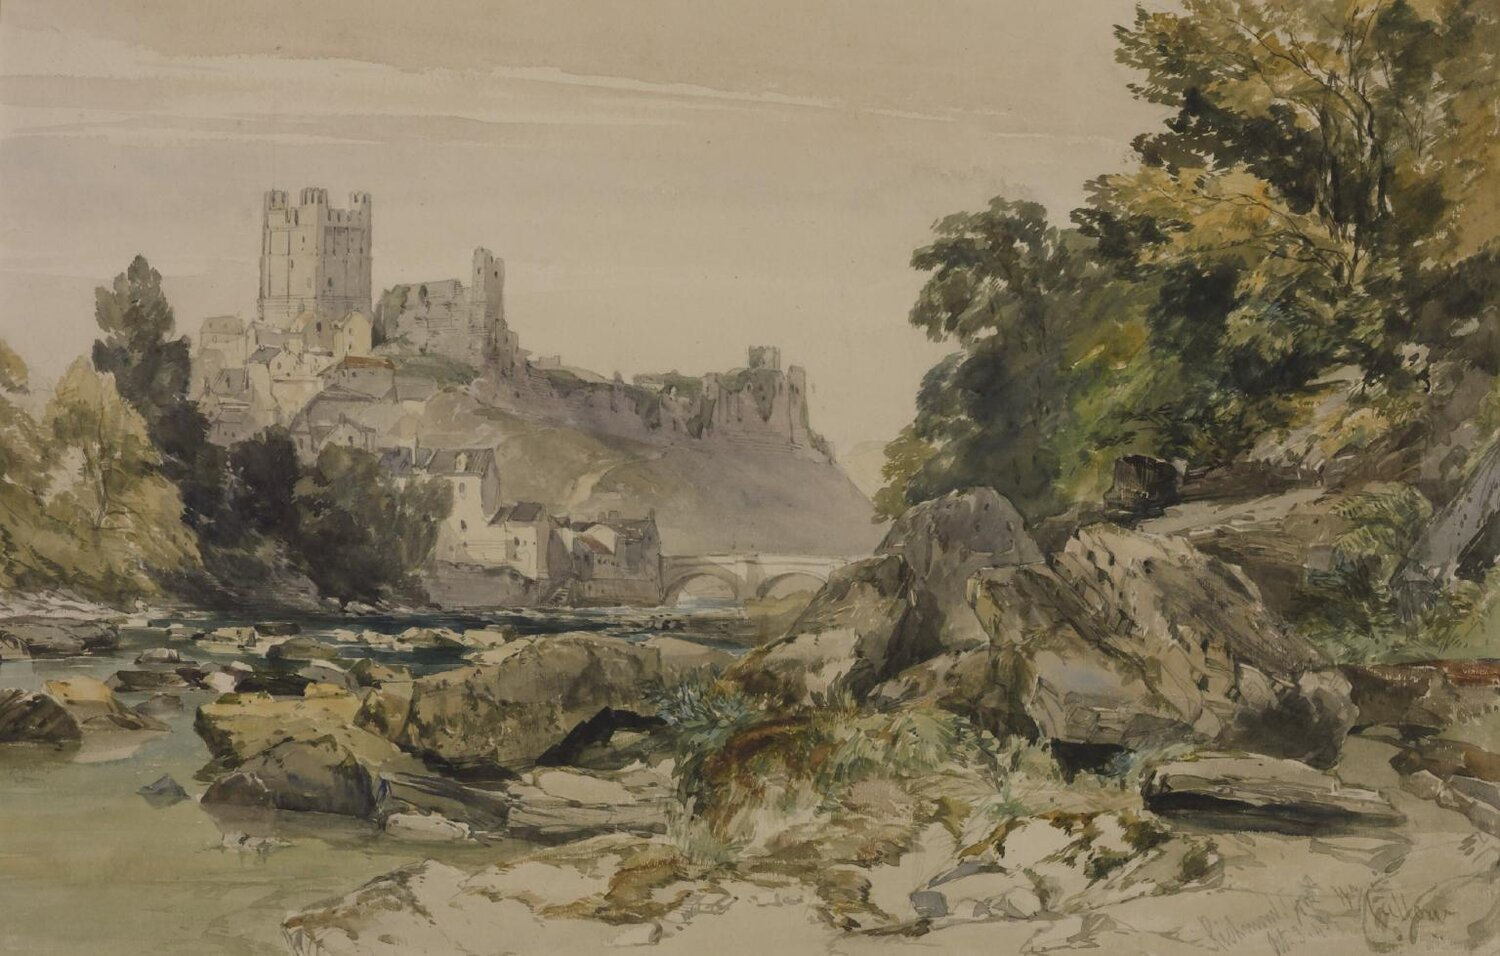 Richmond Castle, Yorkshire by WILLIAM CALLOW